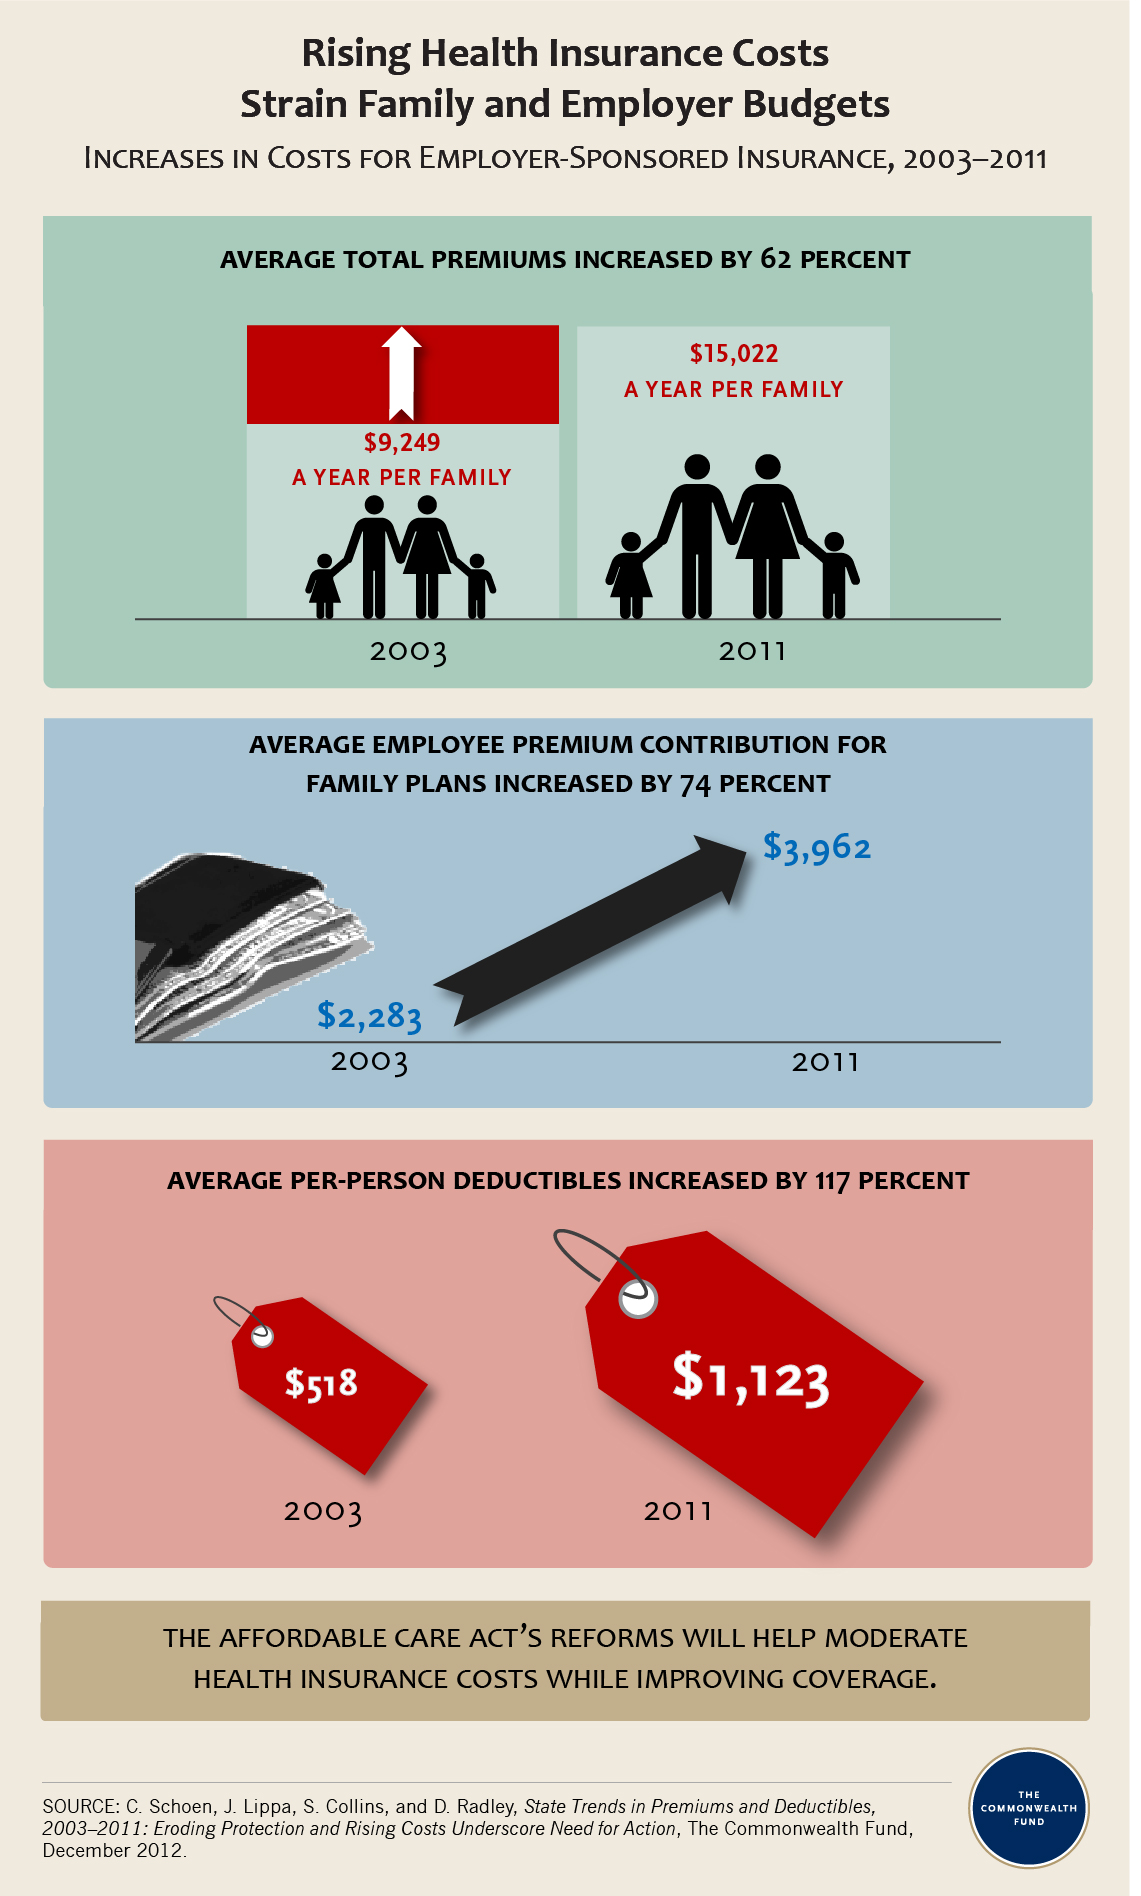 IMPORTED: www_commonwealthfund_org____media_images_infographics_2012_state_premiums_2012_infographic_v3.jpg